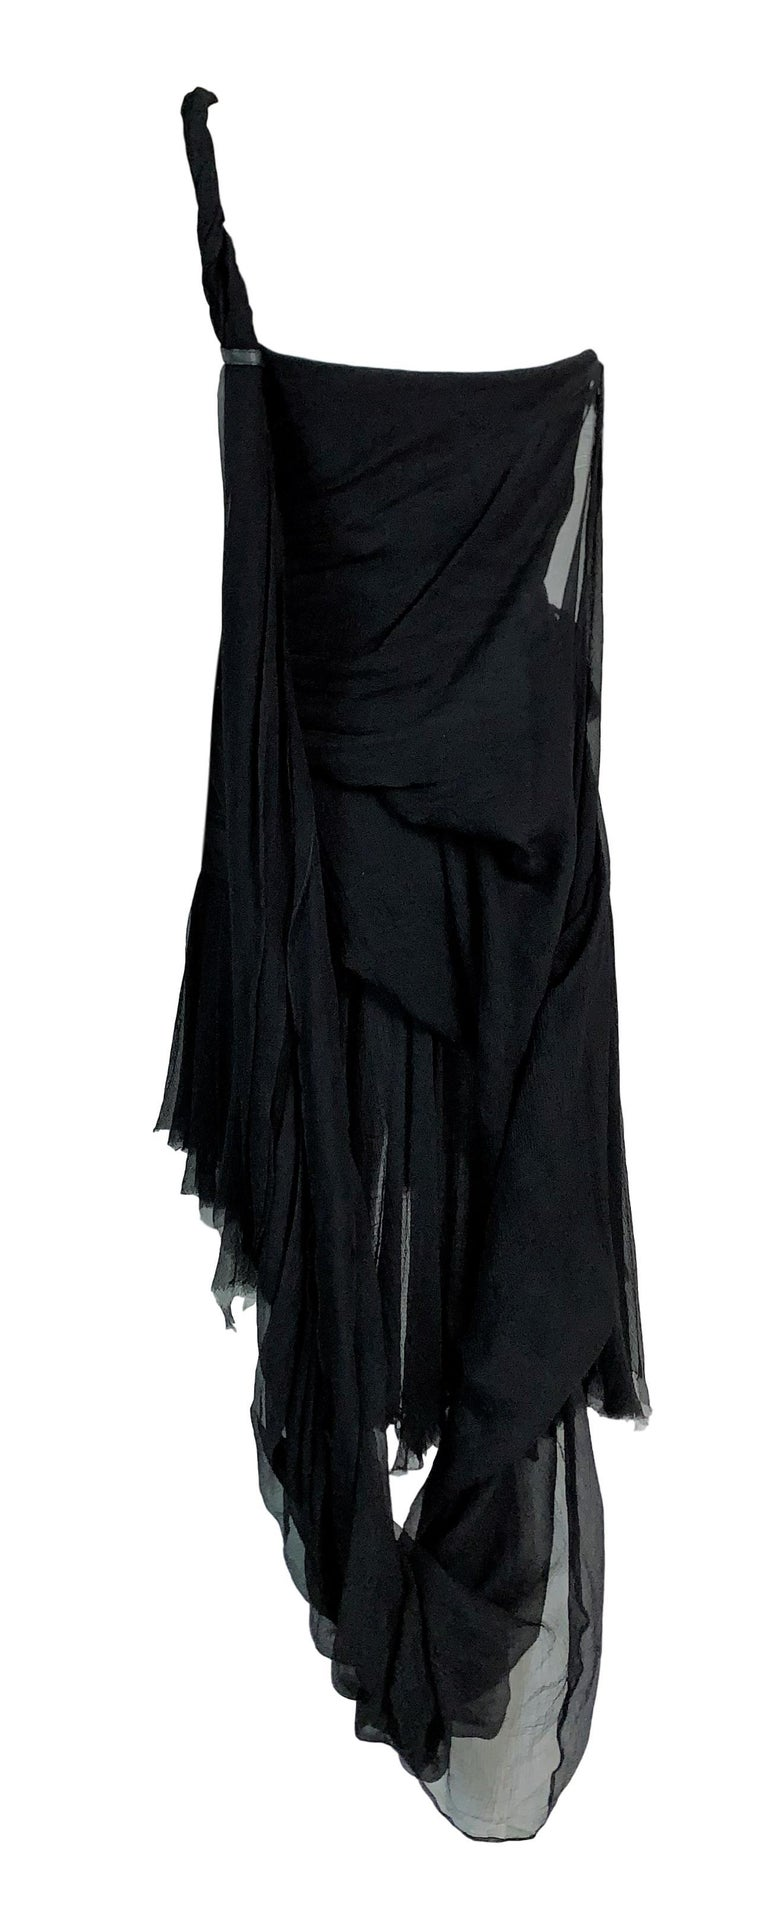 S/S 2003 Alexander McQueen Irere Shipwreck Black Silk Bustier Mini Dress For Sale 2